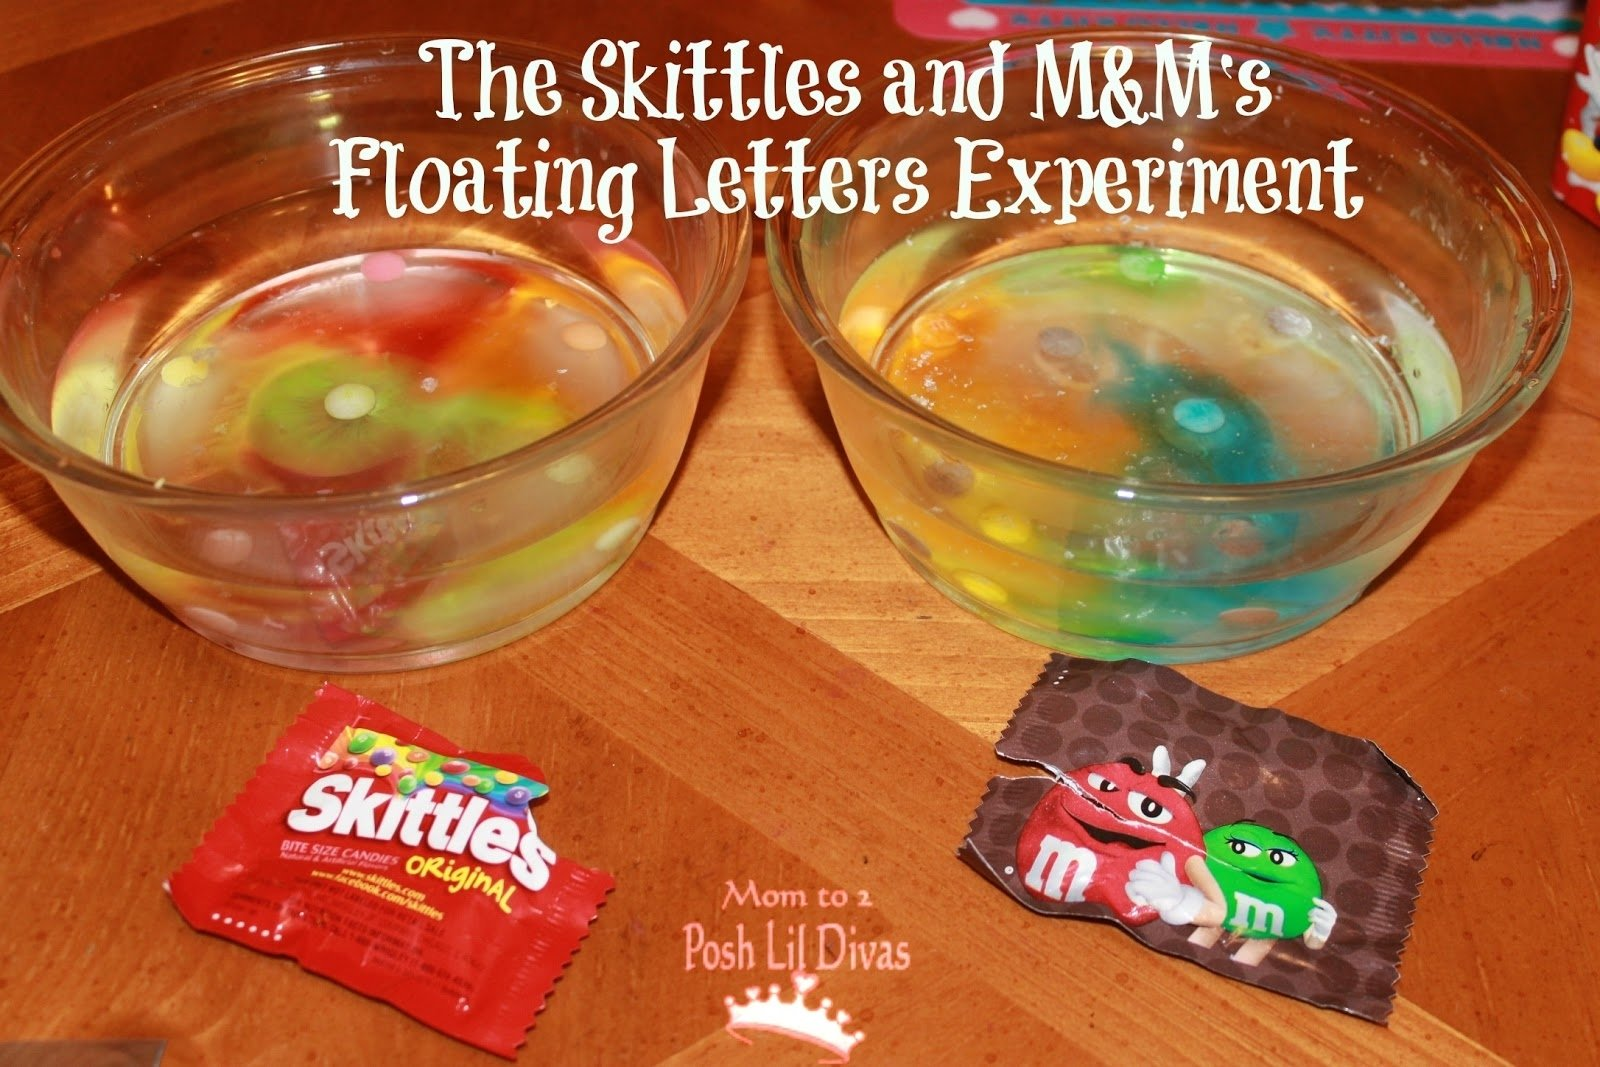 mom to 2 posh lil divas: 35+ candy experiments, learning activities